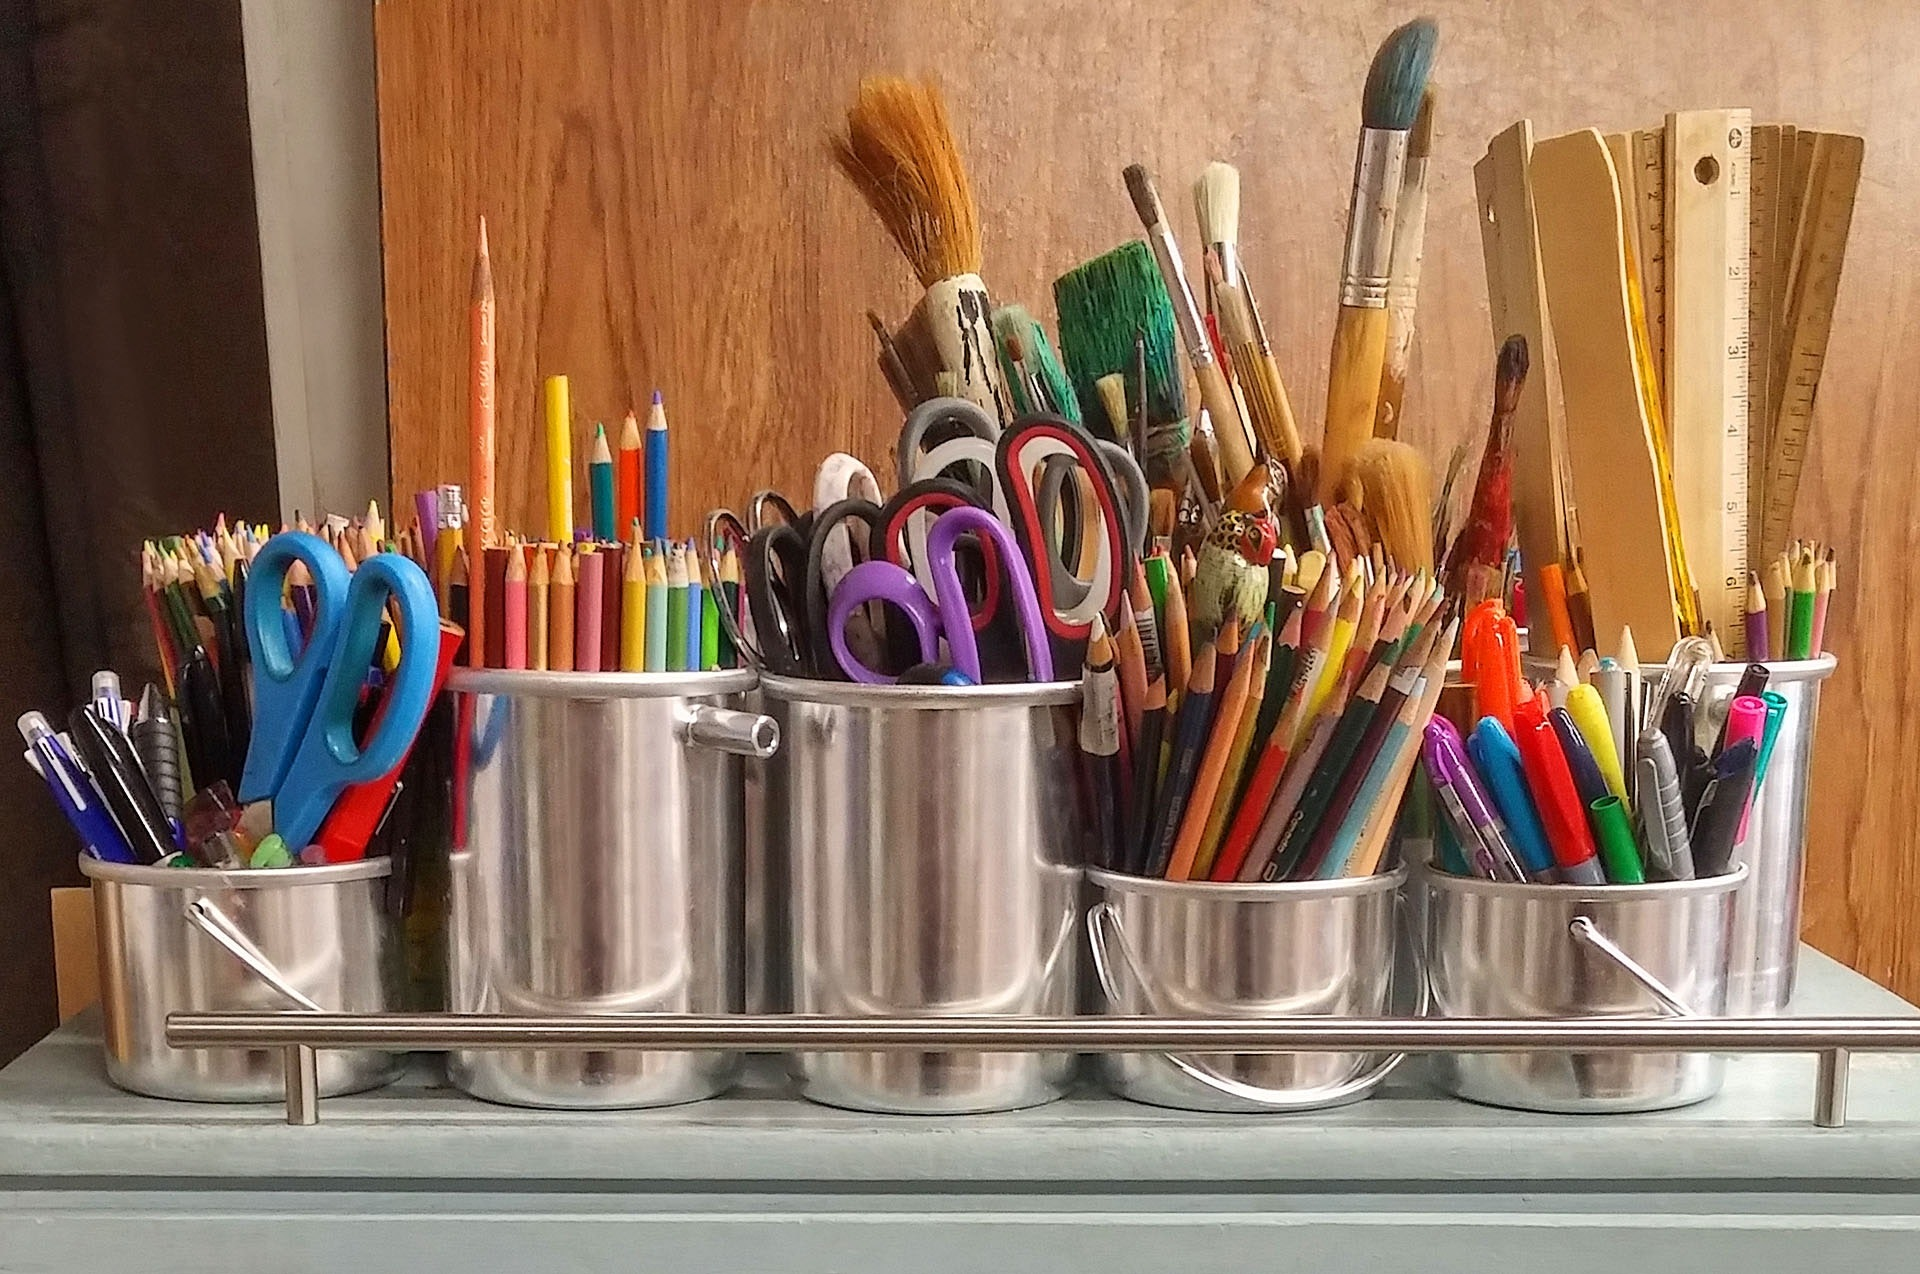 Why Should You Turn Arts And Crafts Into A Business?